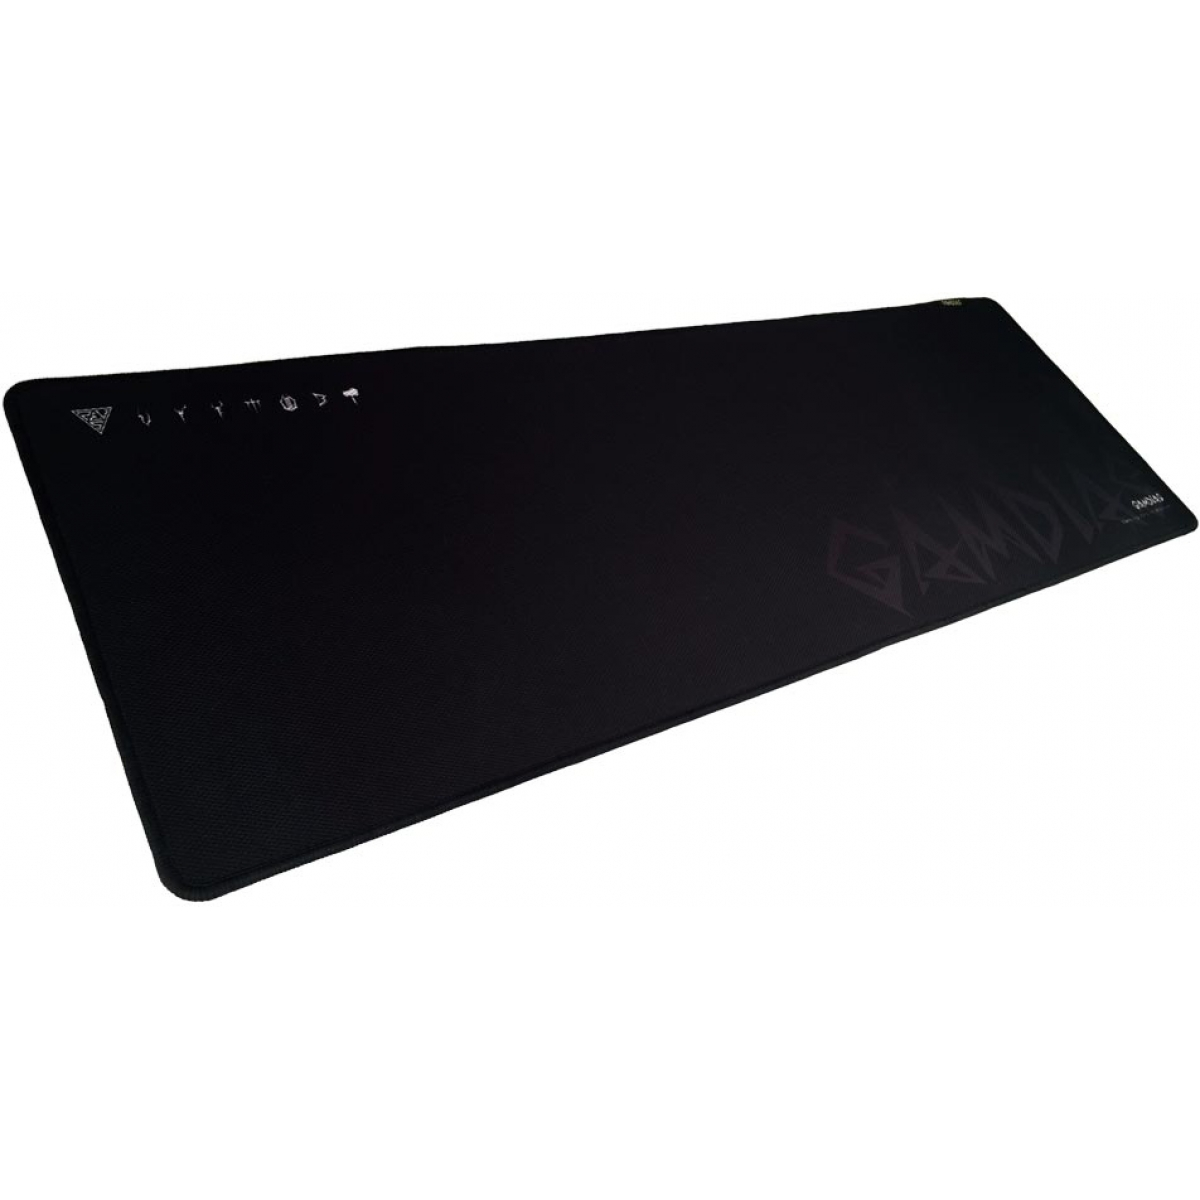 Mousepad Gamer Gamdias Nyx P1 Control Extended GD-NYX-P1